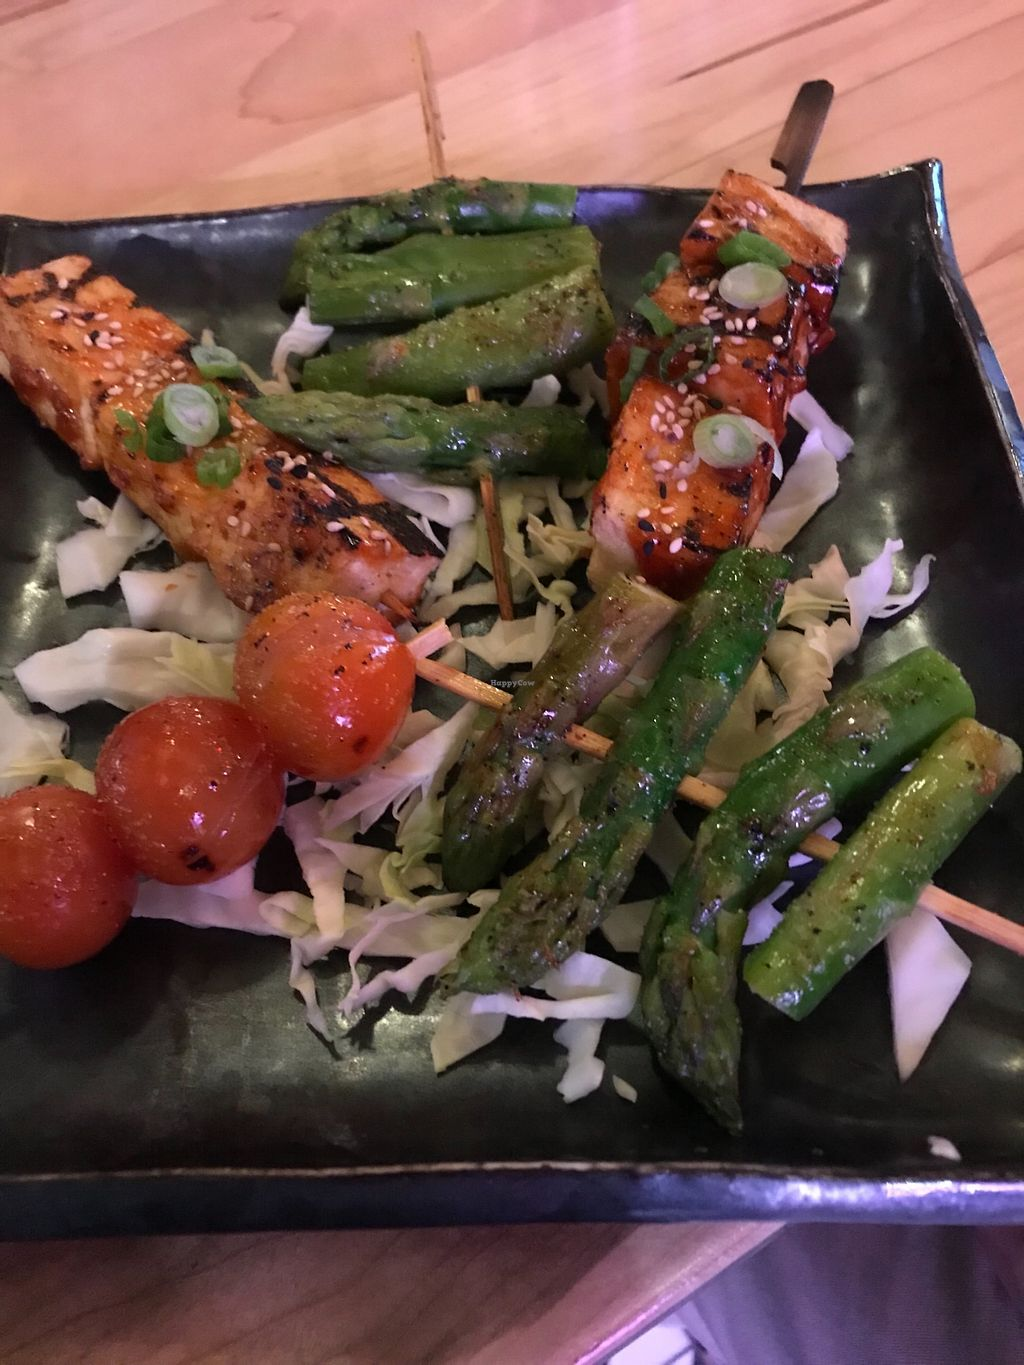 """Photo of Paris Hotel - Sekushi  by <a href=""""/members/profile/sjberrest"""">sjberrest</a> <br/>Tofu and veggie skewers <br/> December 29, 2017  - <a href='/contact/abuse/image/108131/340270'>Report</a>"""